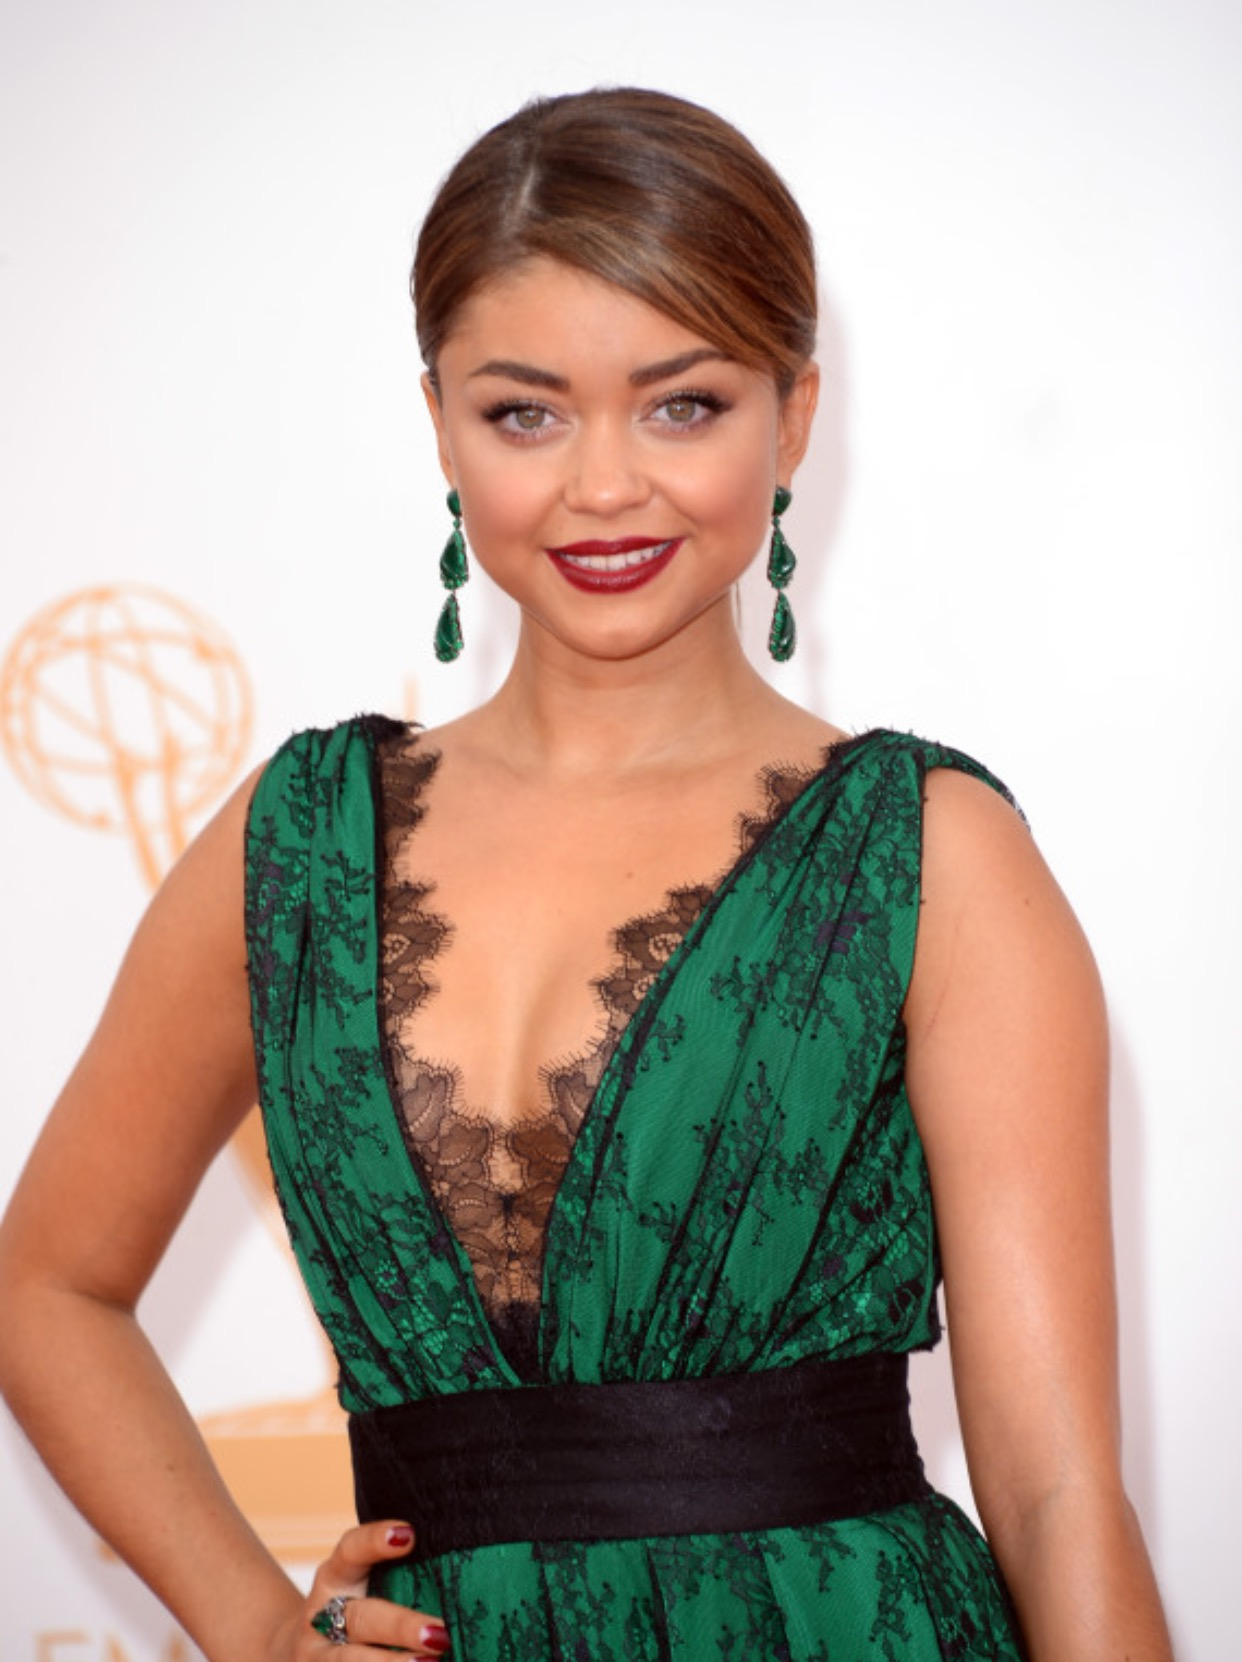 Get Your Bridal Beauty Inspiration From Sarah Hyland